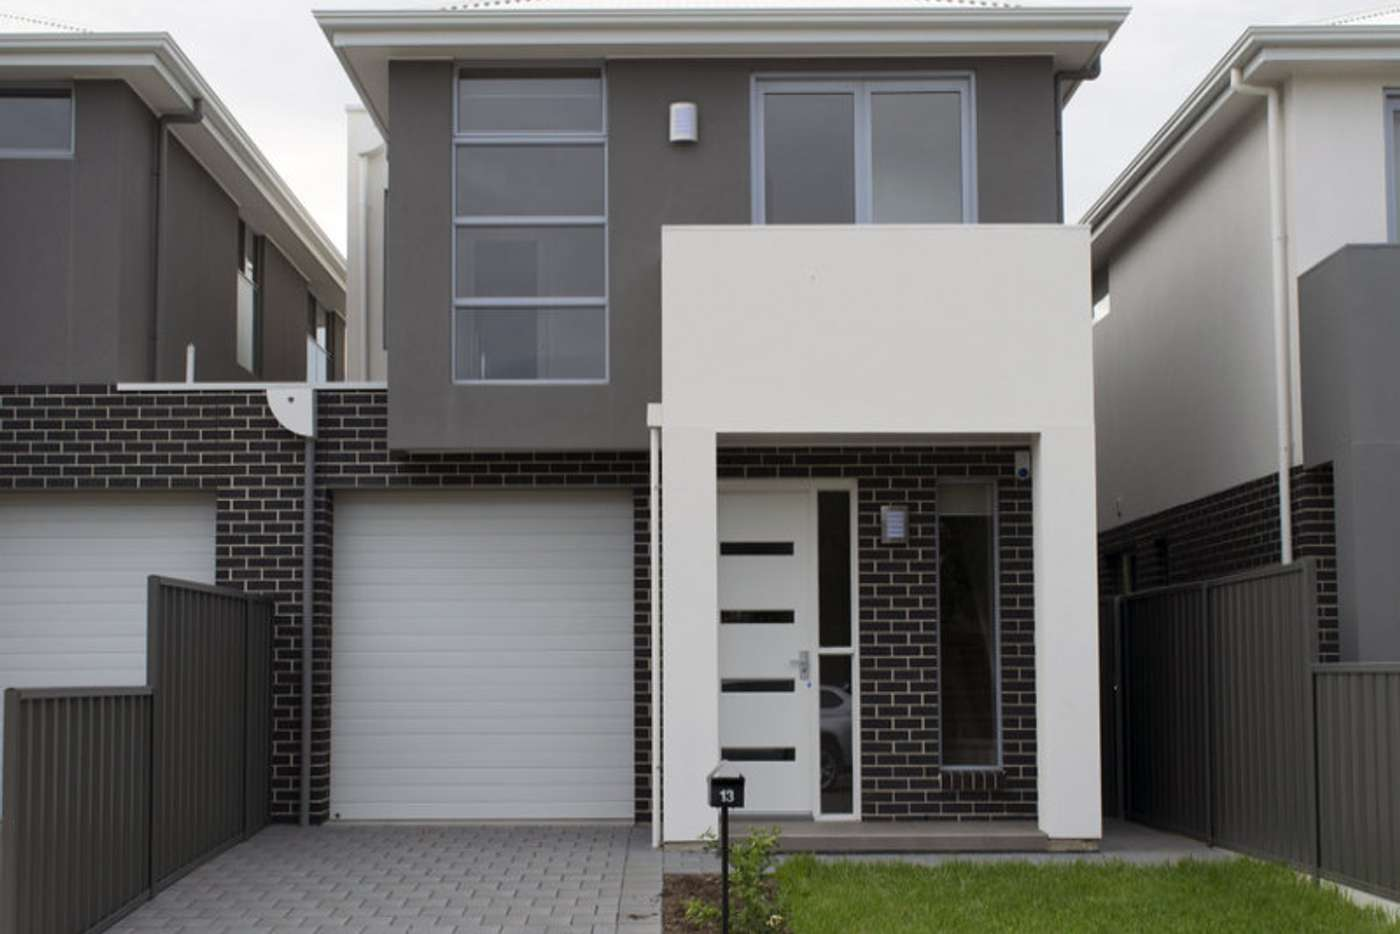 Main view of Homely house listing, 17 Harlow, Mitchell Park SA 5043